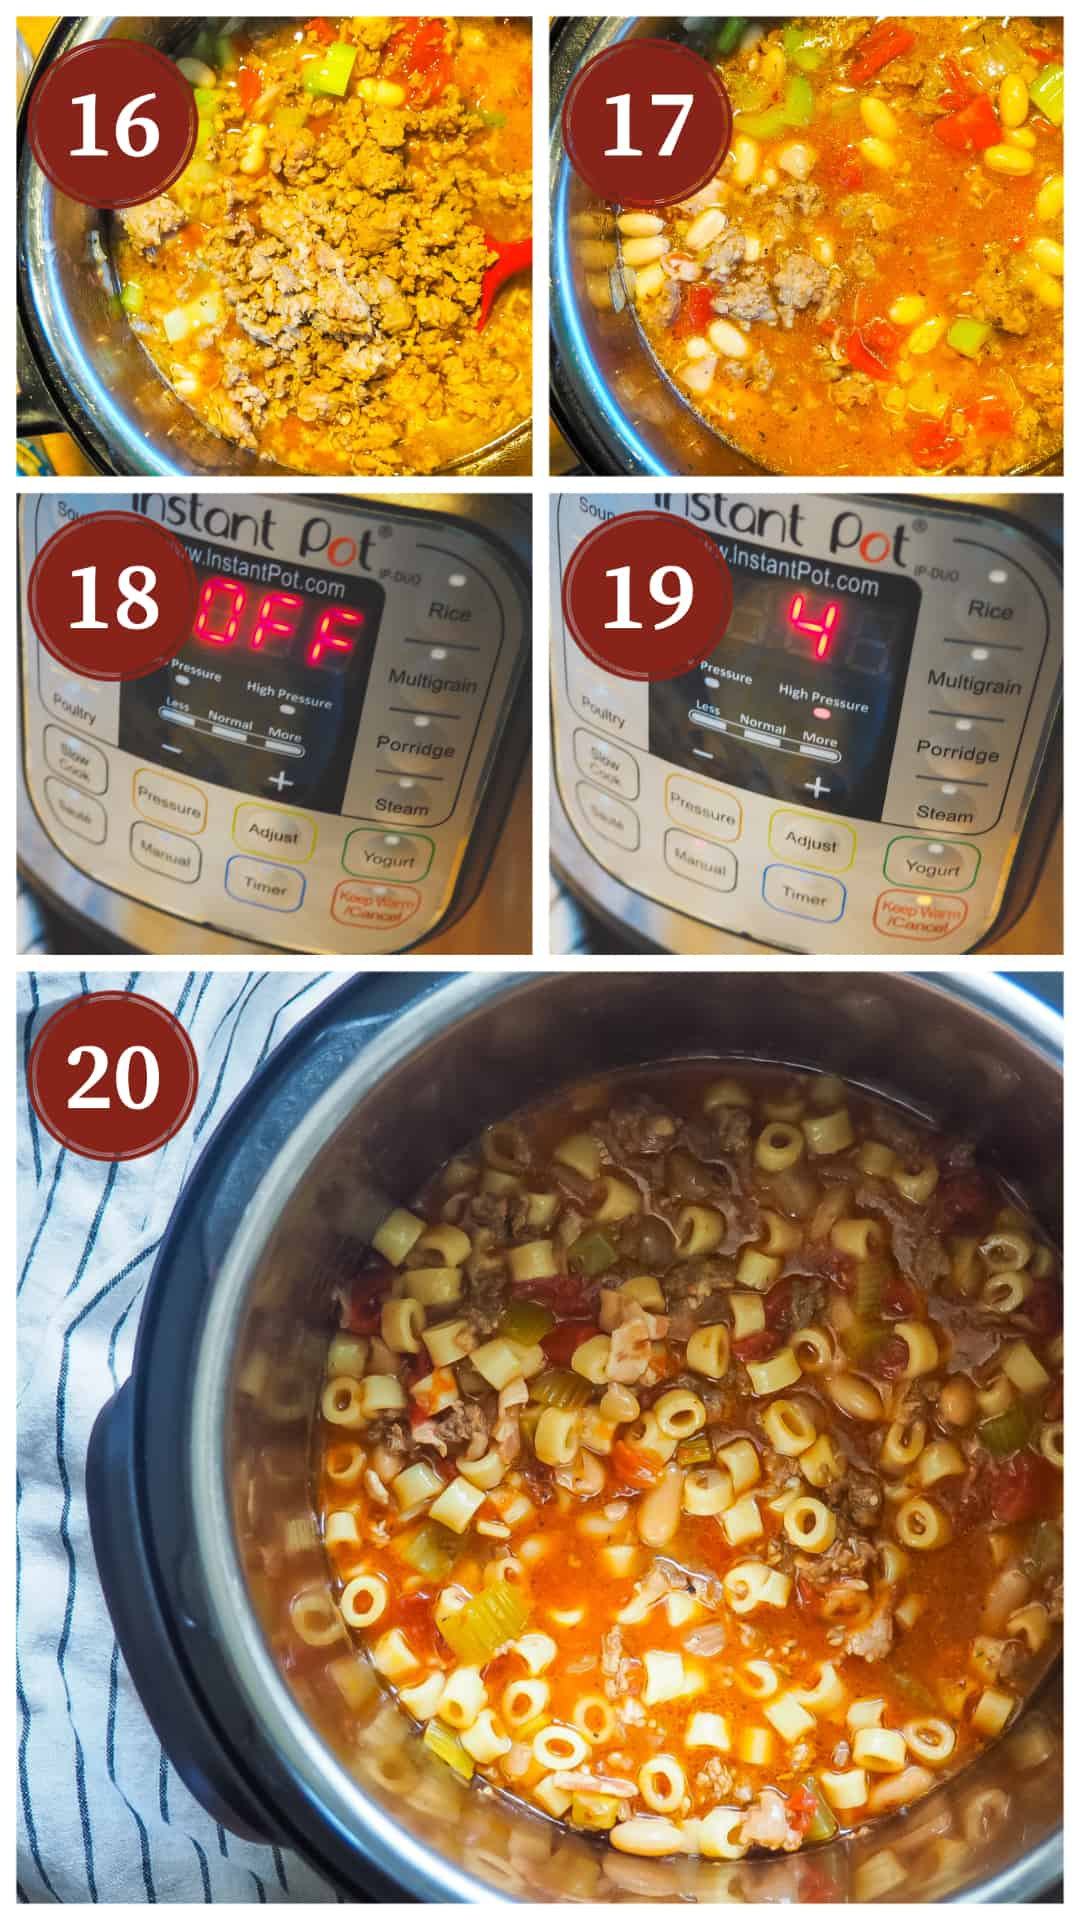 A process collage of images for making pasta e fagioli in an instant pot, steps 16 - 20.